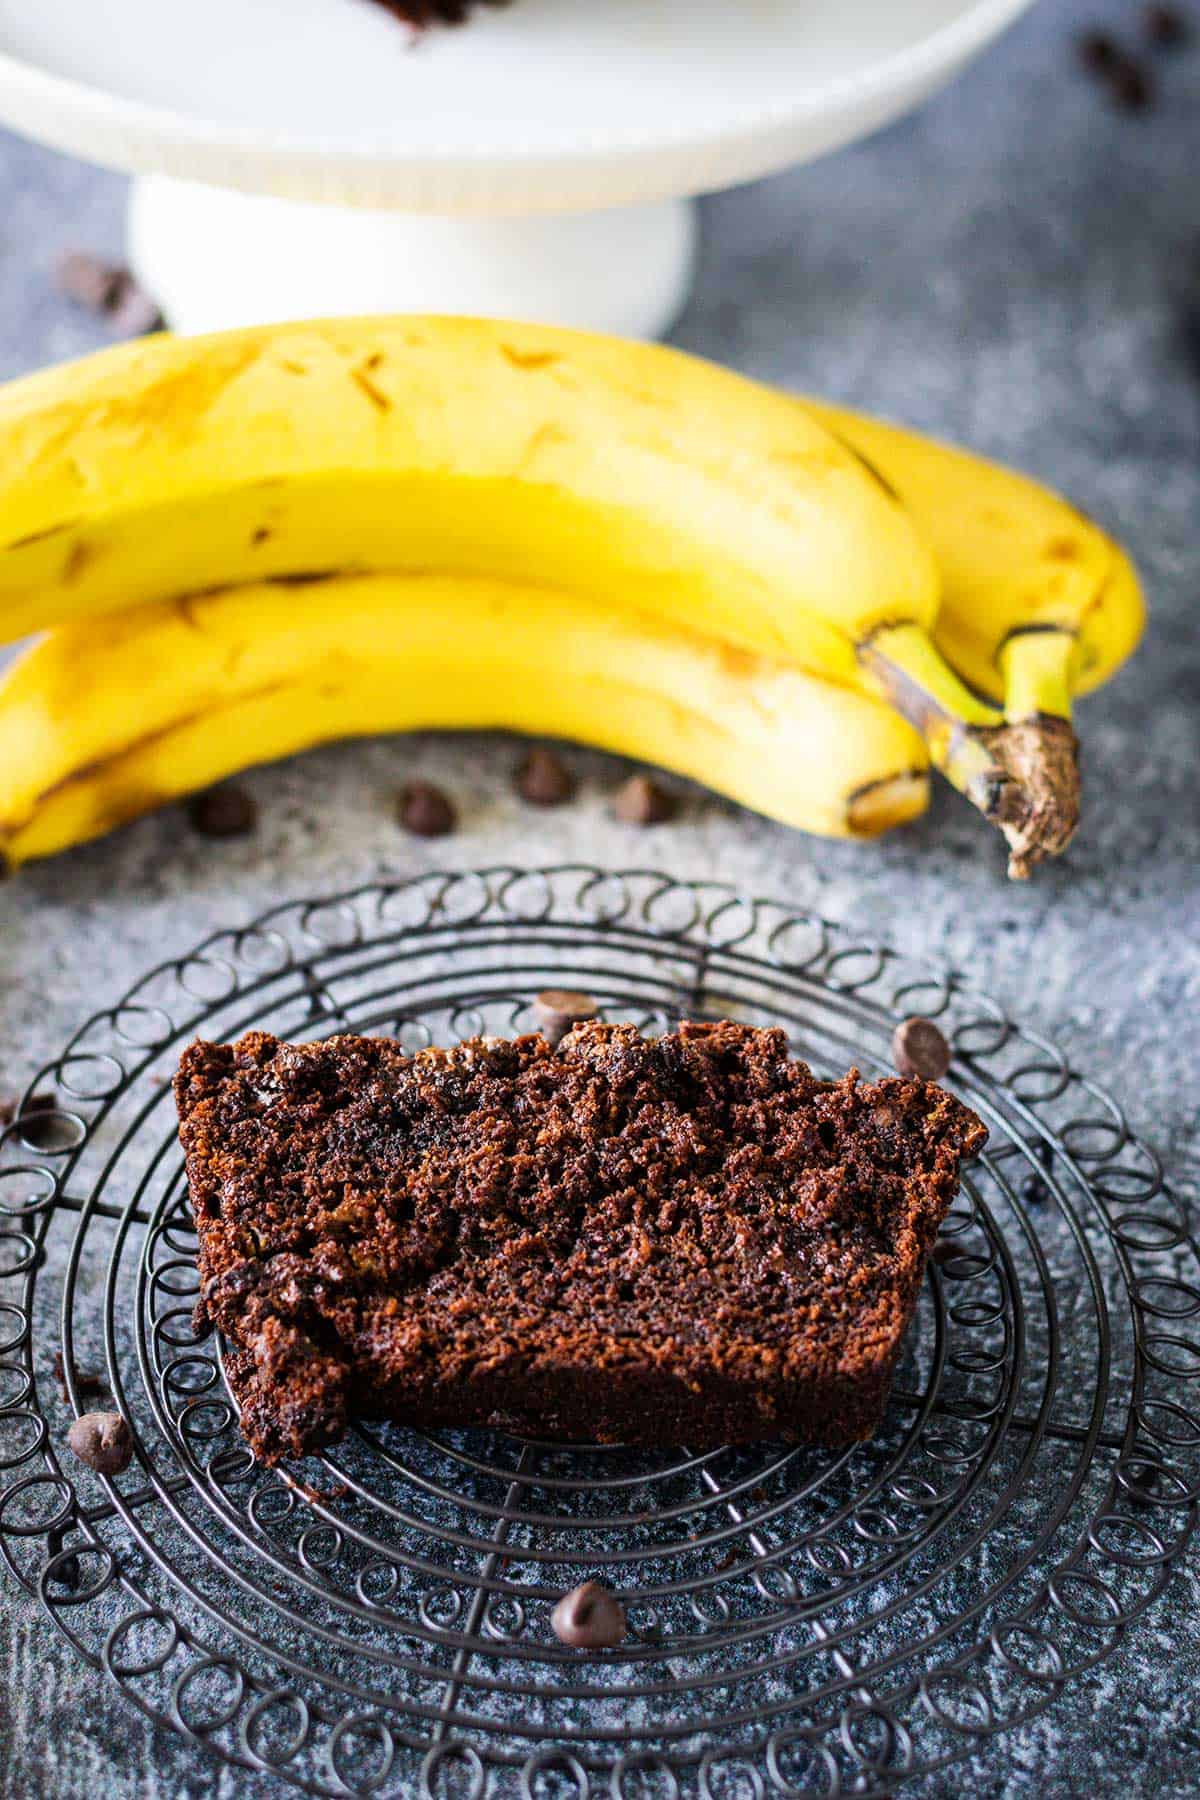 Slice of chocolate banana bread on a decorative round cooling wire with chocolate chips scattered and a banana in the background.